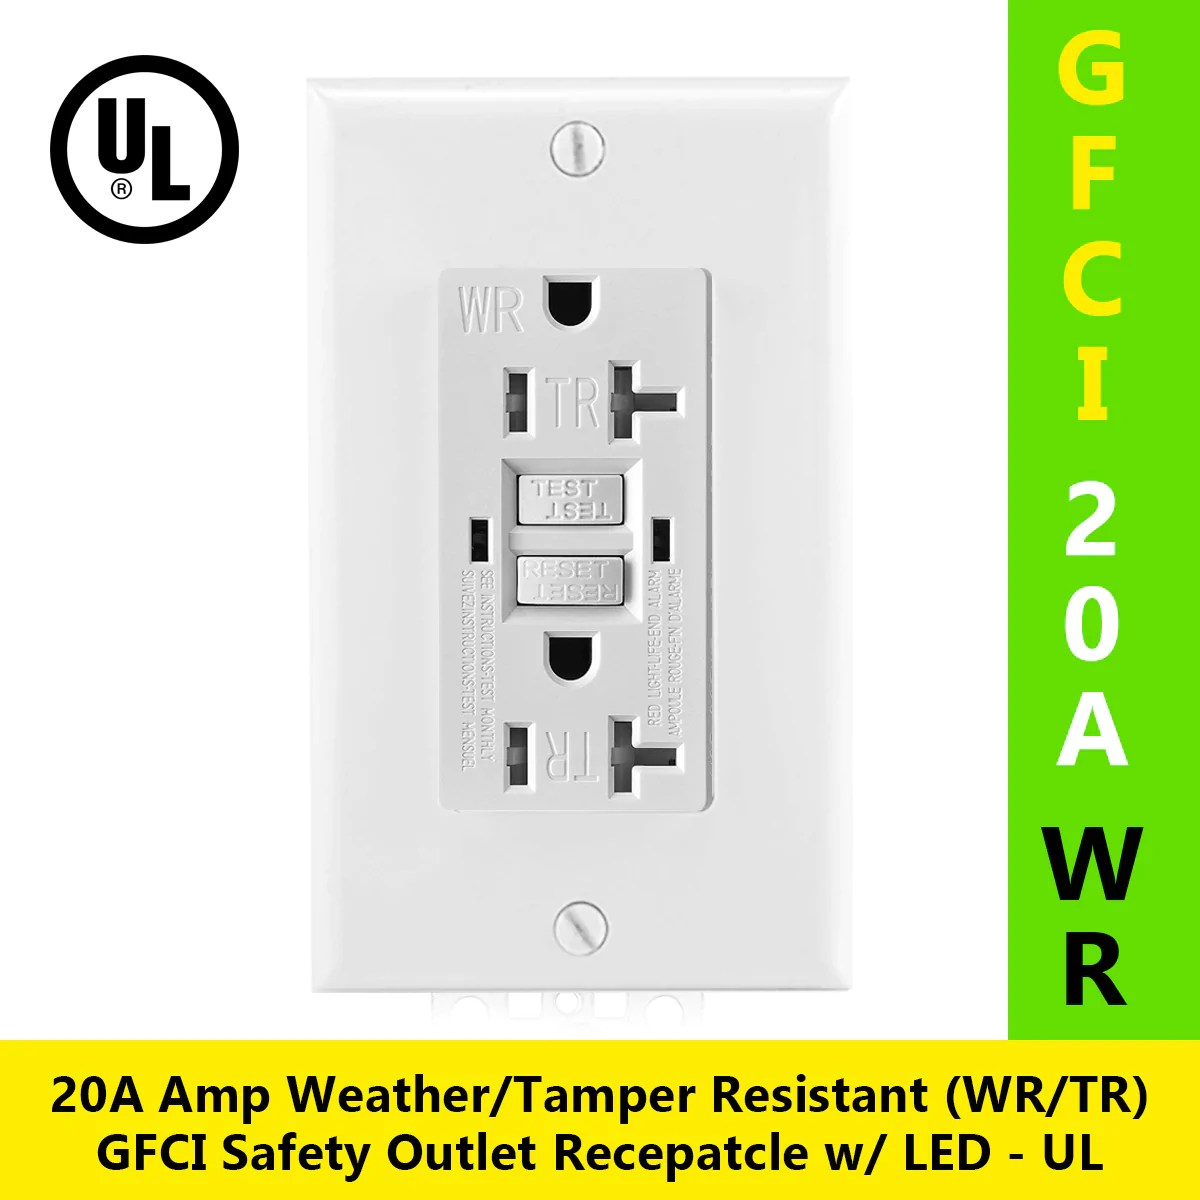 Test Alarme 20a Tamper Resistant Weather Resistant Tr Wr Gfci Outlet W Wallplate